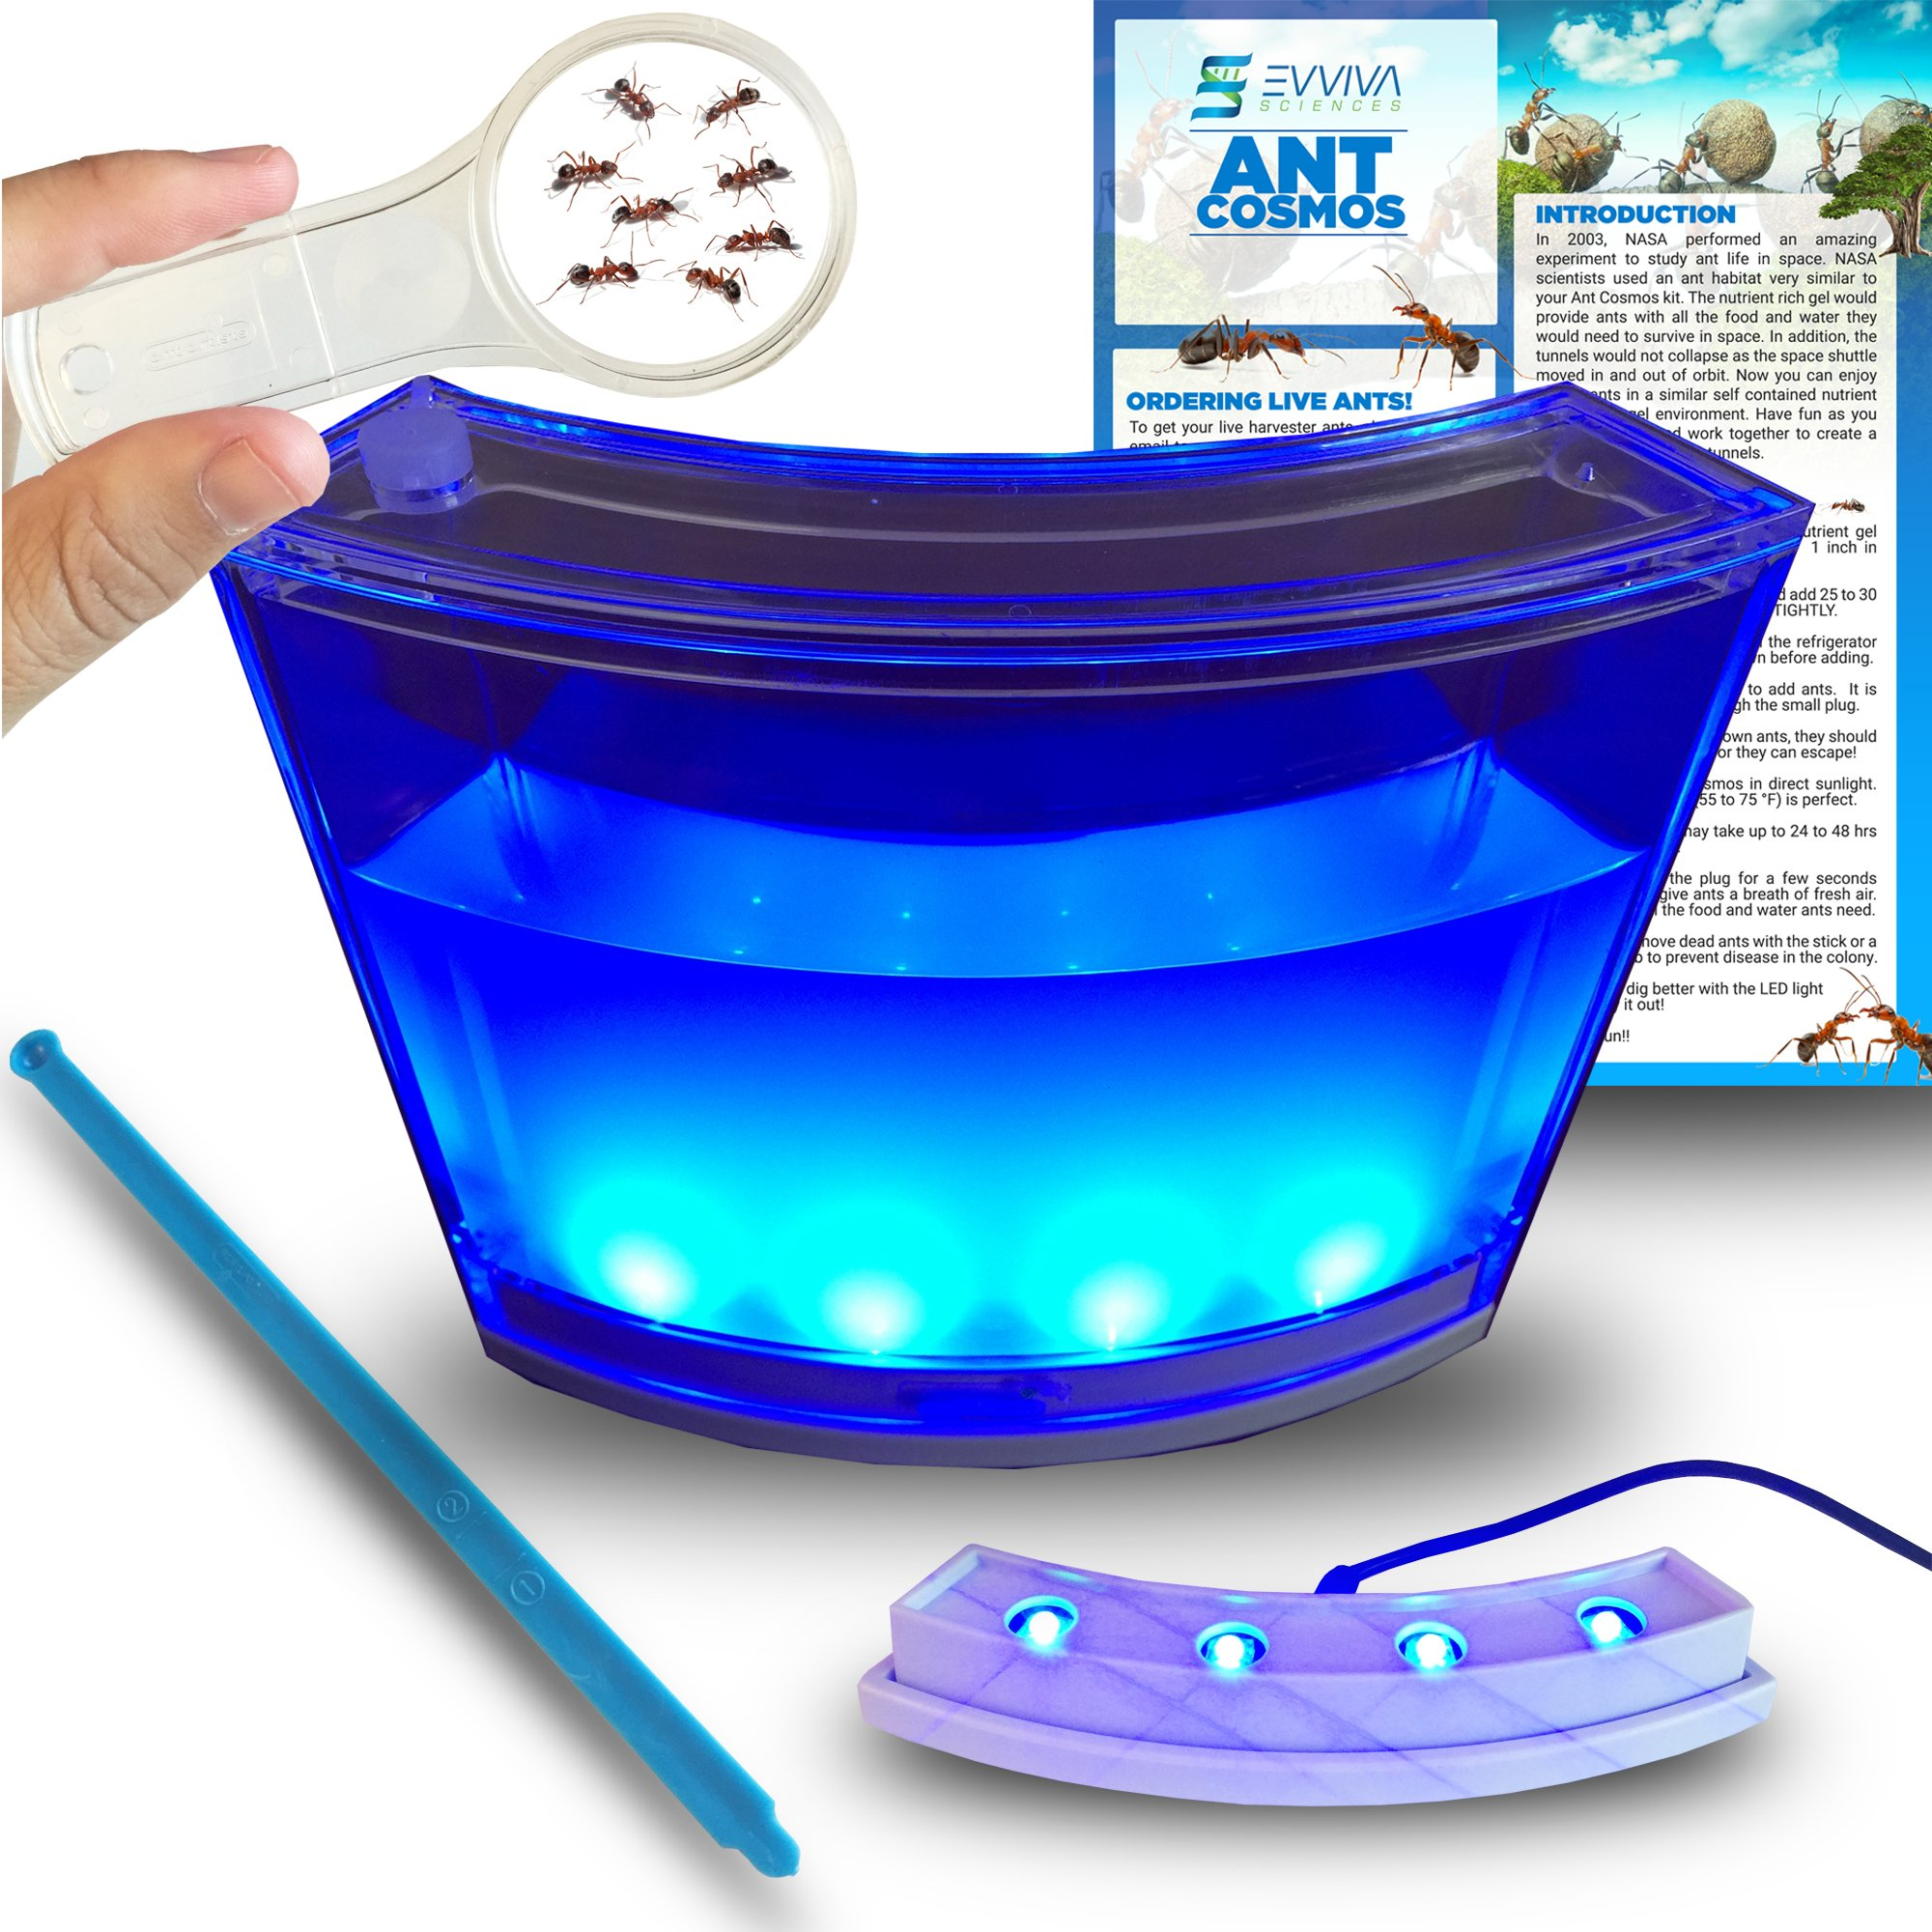 Amazing Ant Habitat W/ LED Light. Enjoy A Magnificent Habitat. Great for Kids & Adults. Evviva Ant Ecosystem W/ Enhanced Blue Gel. Educational & Learning Science Kit. Live Ants Not Included by Evviva Sciences